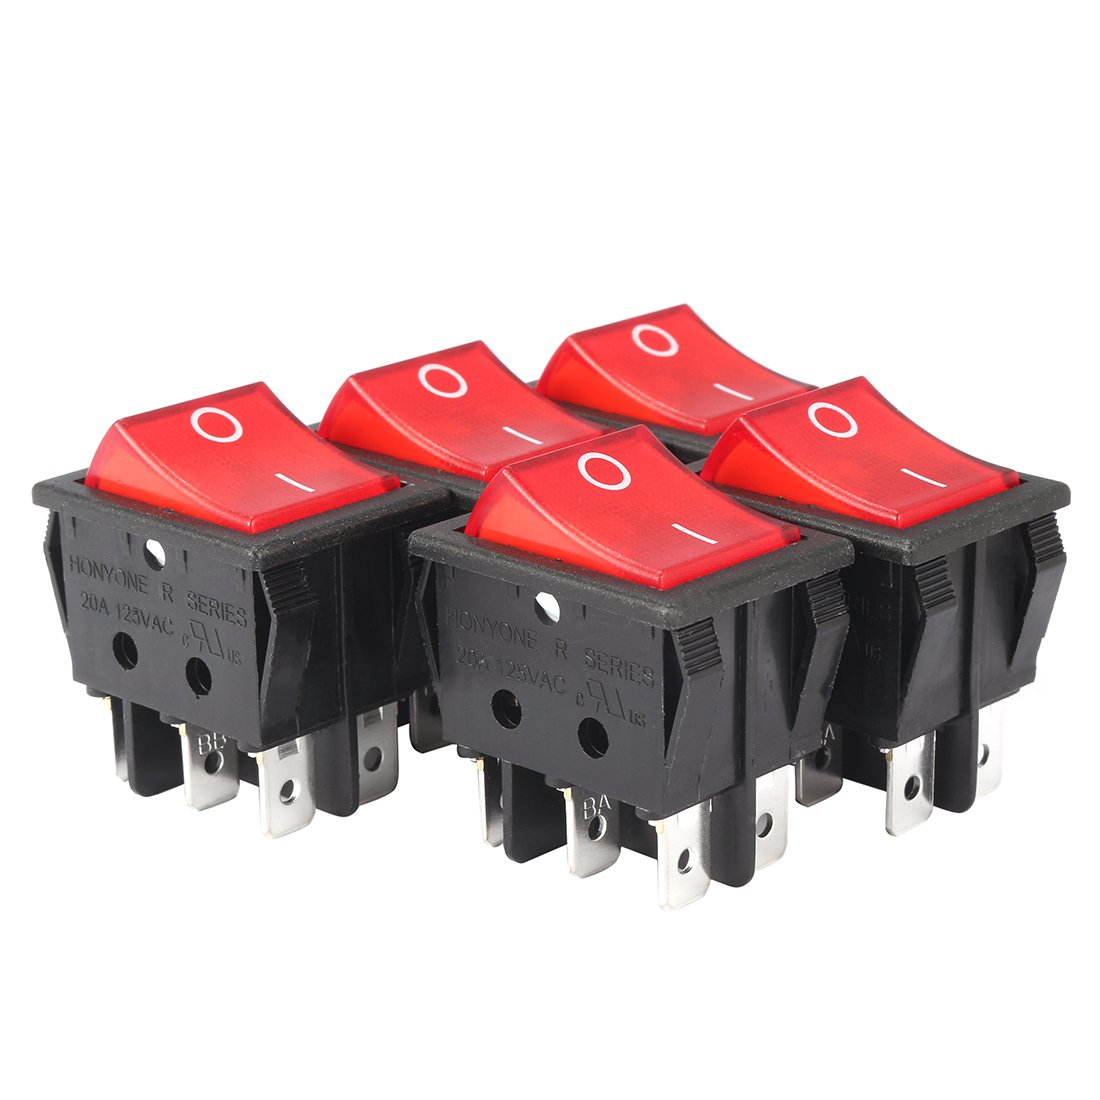 uxcell 5Pcs AC 20A/125V 22A/250V DPDT 6Pin 2 Position Illuminated Red neon lamp Light Boat Rocker Switches On/Off